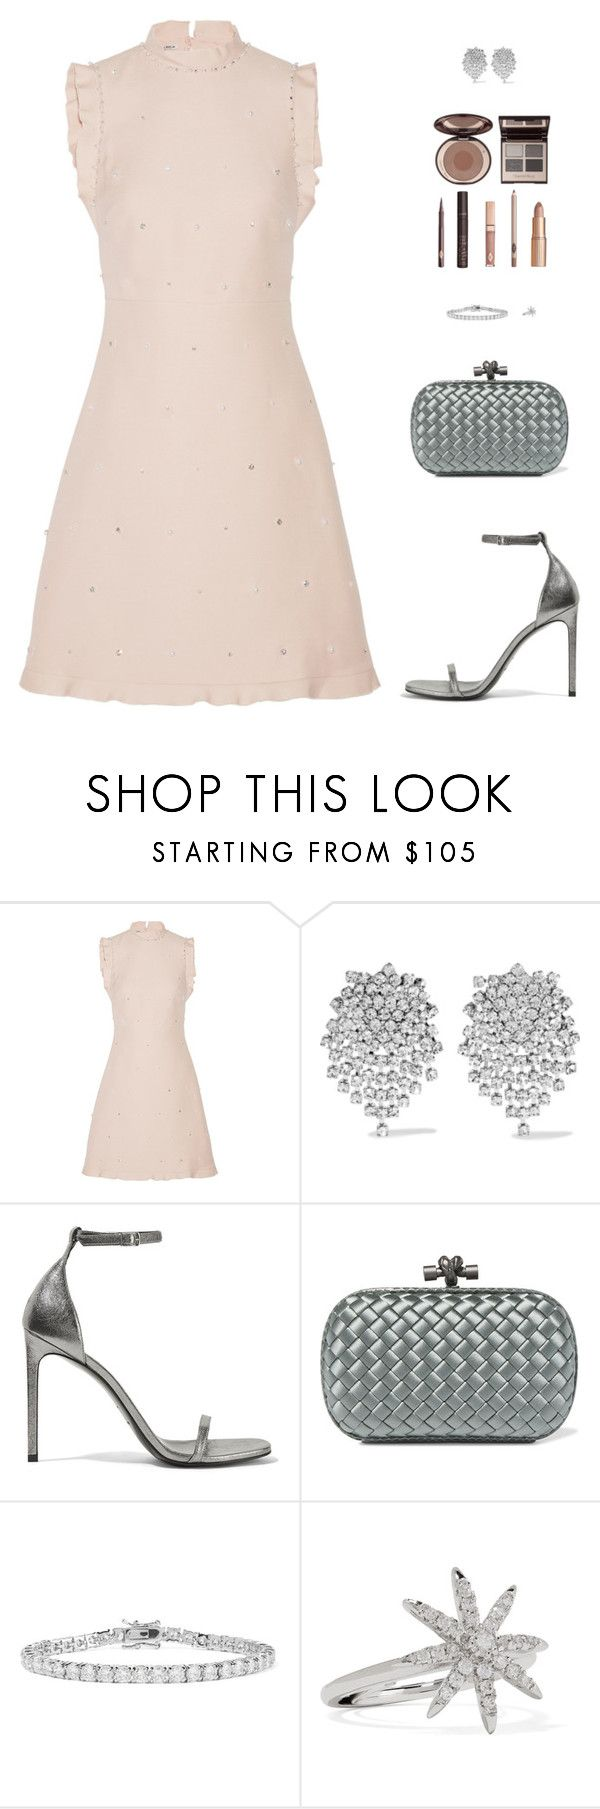 """Sin título #4903"" by mdmsb ❤ liked on Polyvore featuring Miu Miu, Kenneth Jay Lane, Yves Saint Laurent, Bottega Veneta and Charlotte Tilbury"